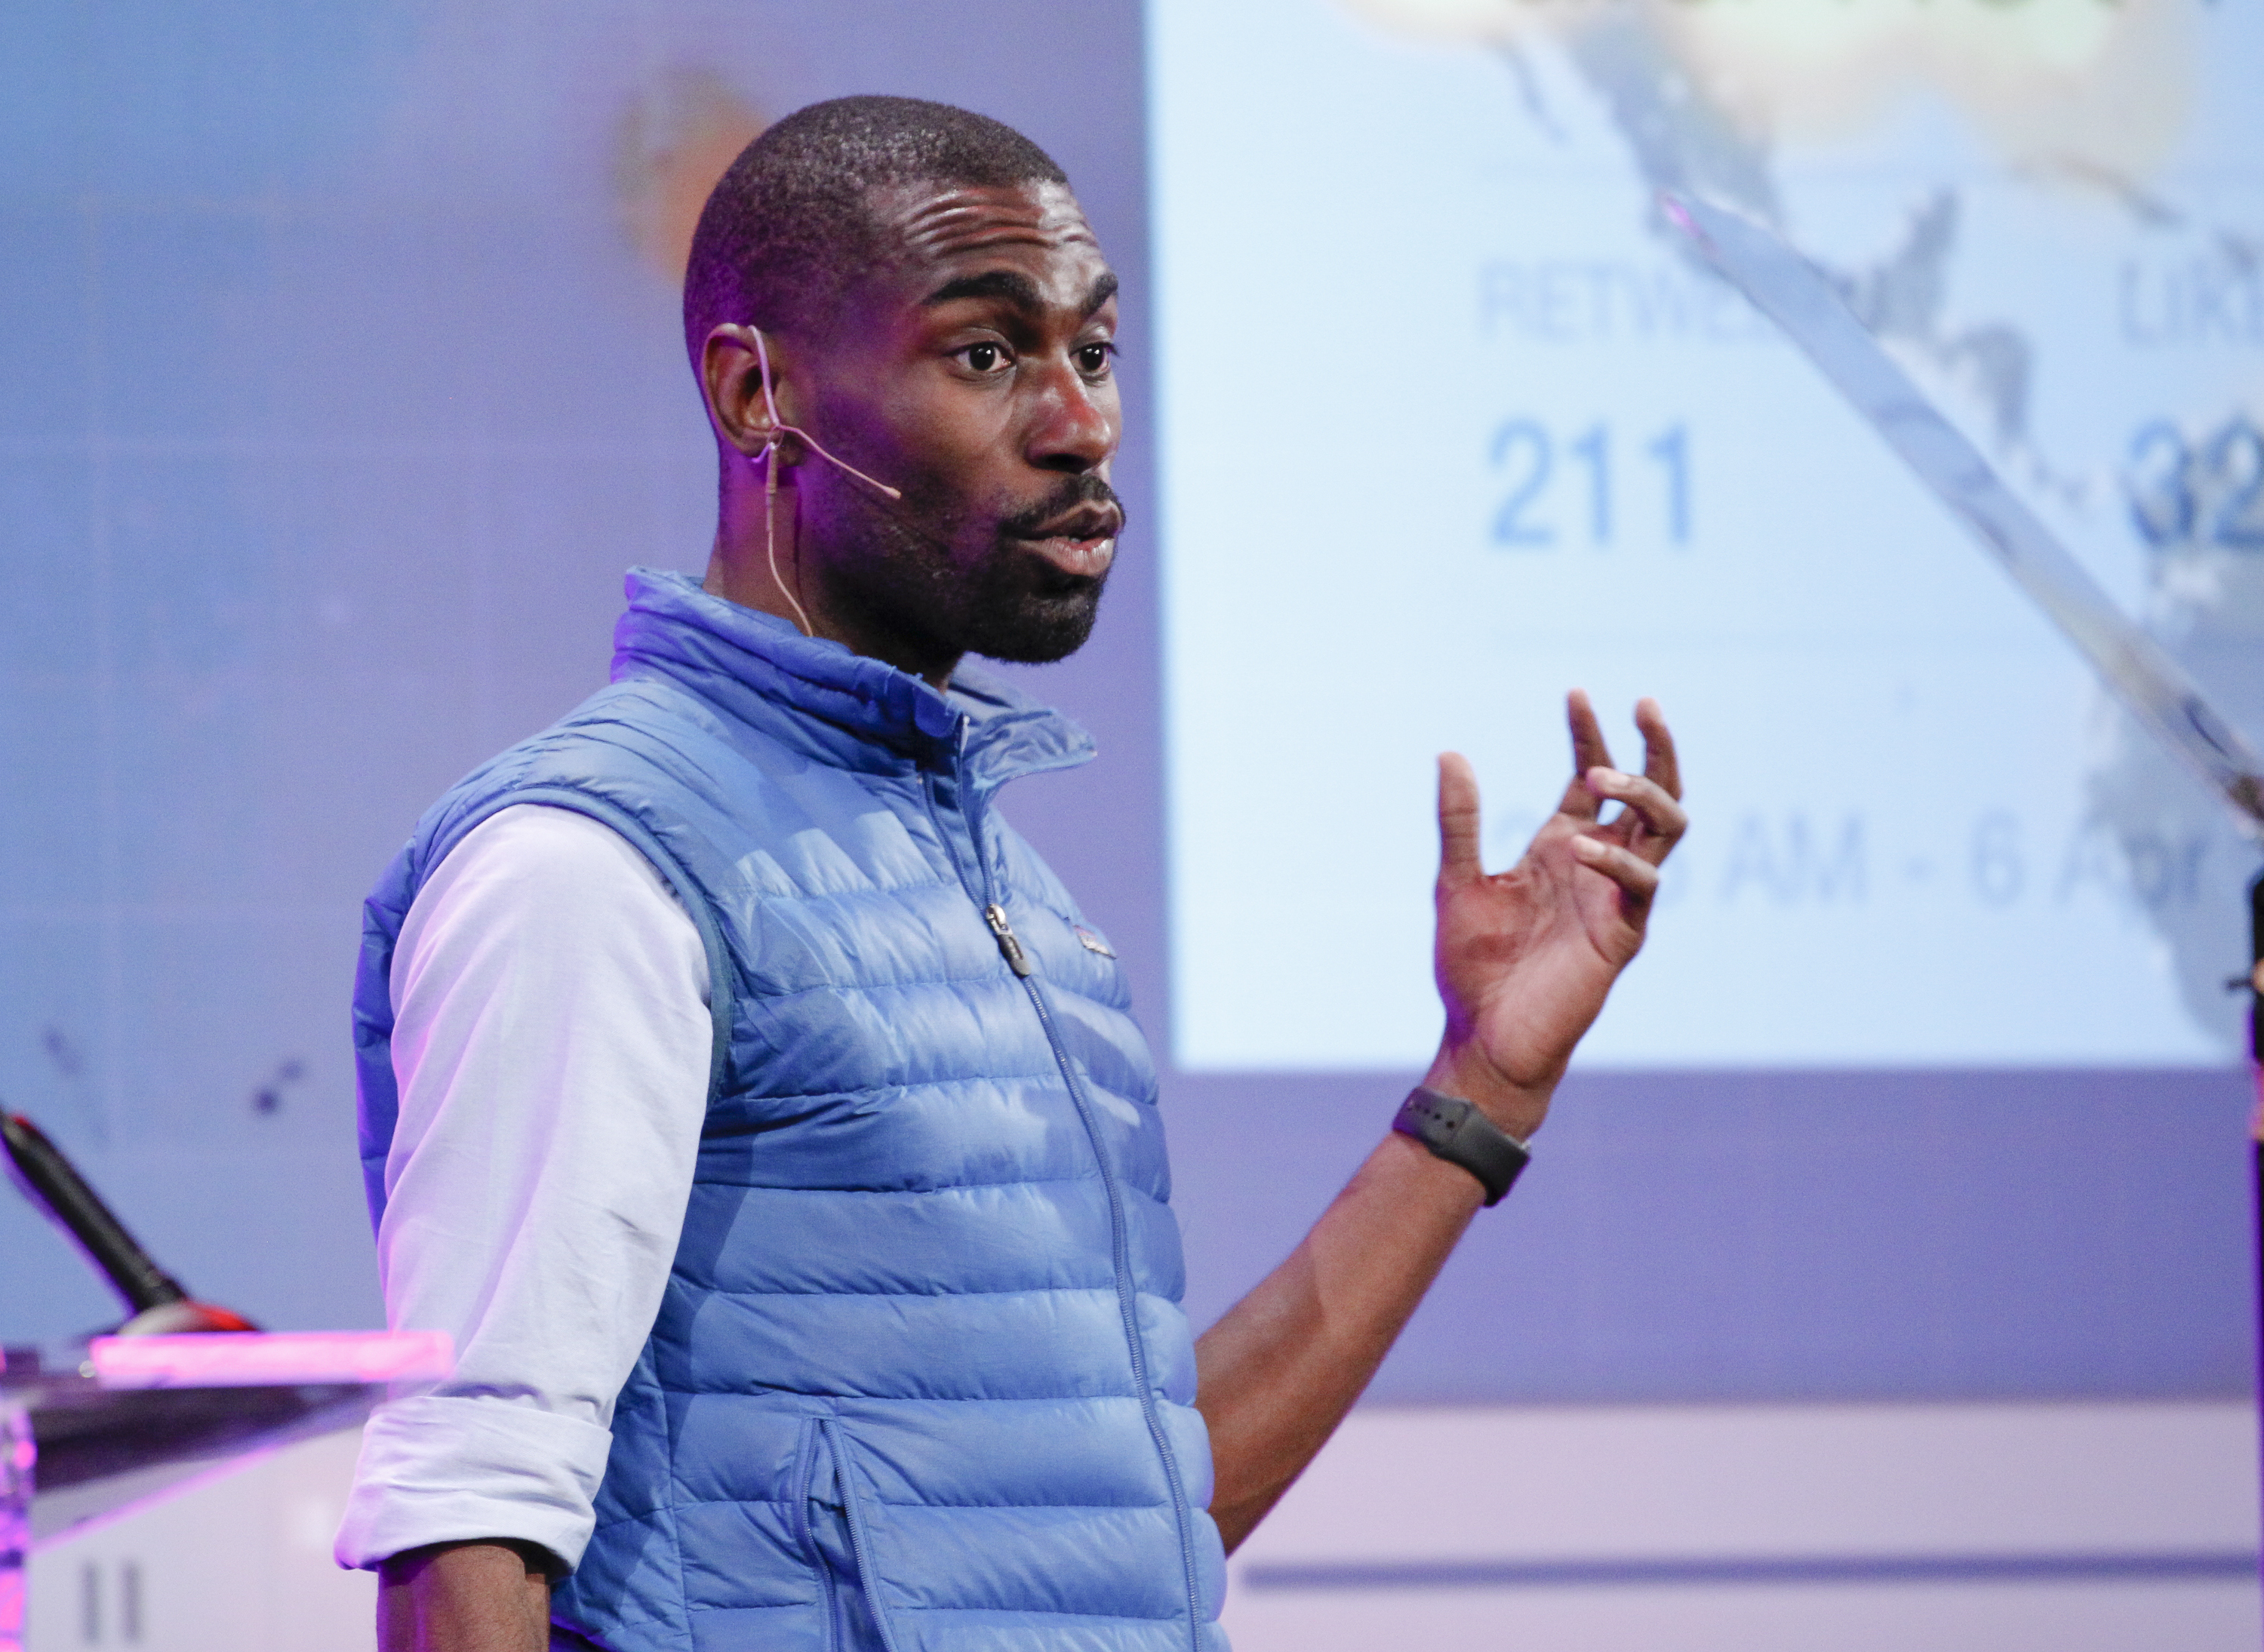 DeRay Mckesson speaks at the GLAAD Gala on Nov. 7, 2015 in San Francisco, CA.